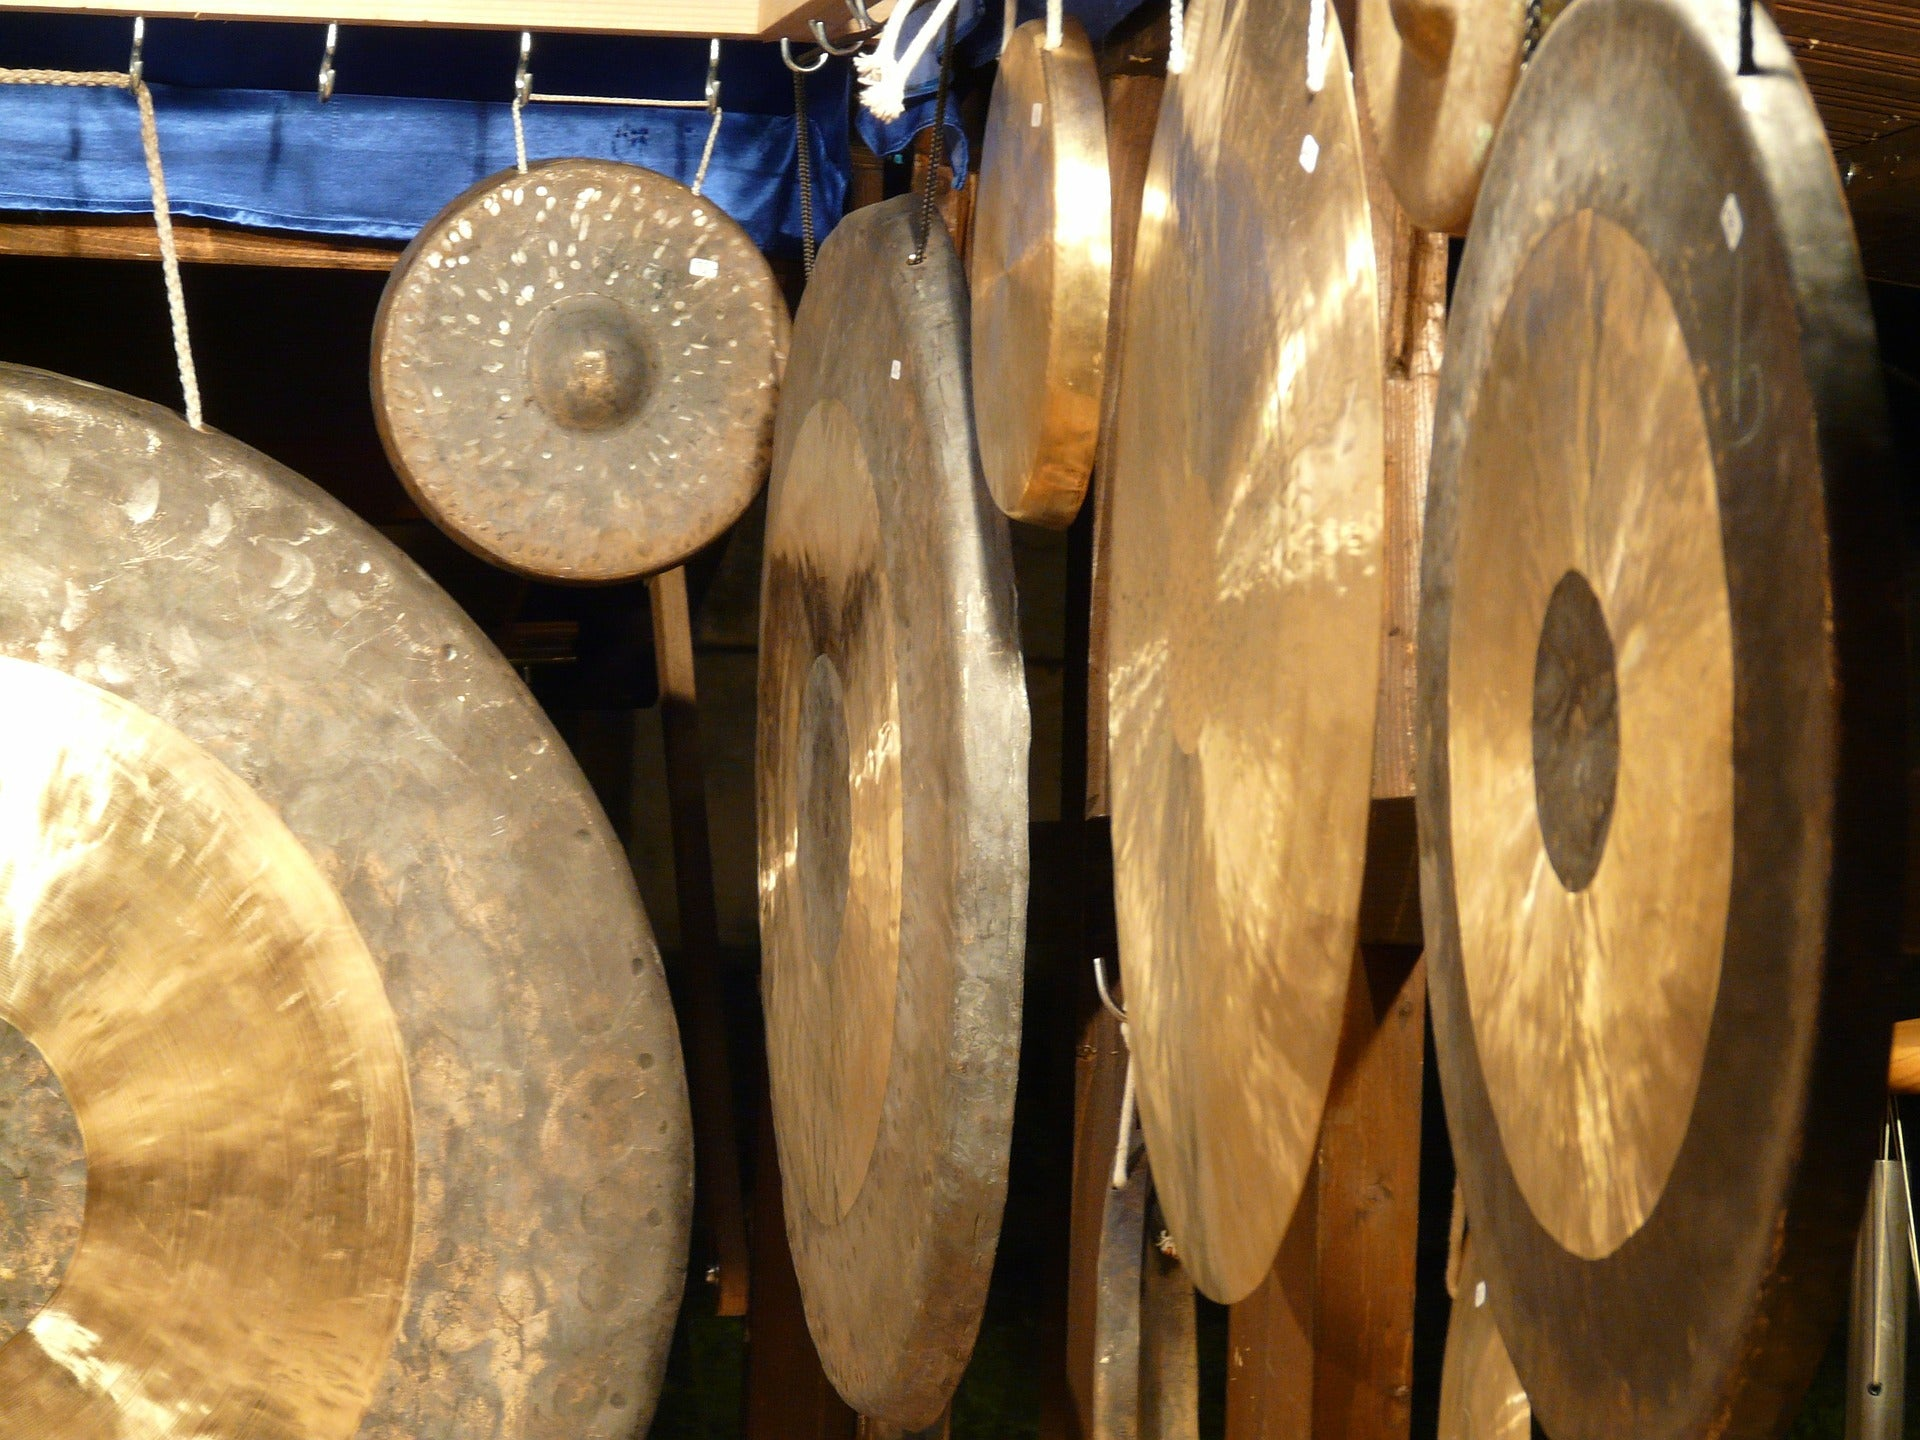 A gong bath is a form of sound healing meditation that has untold benefits and is easy to participate in.